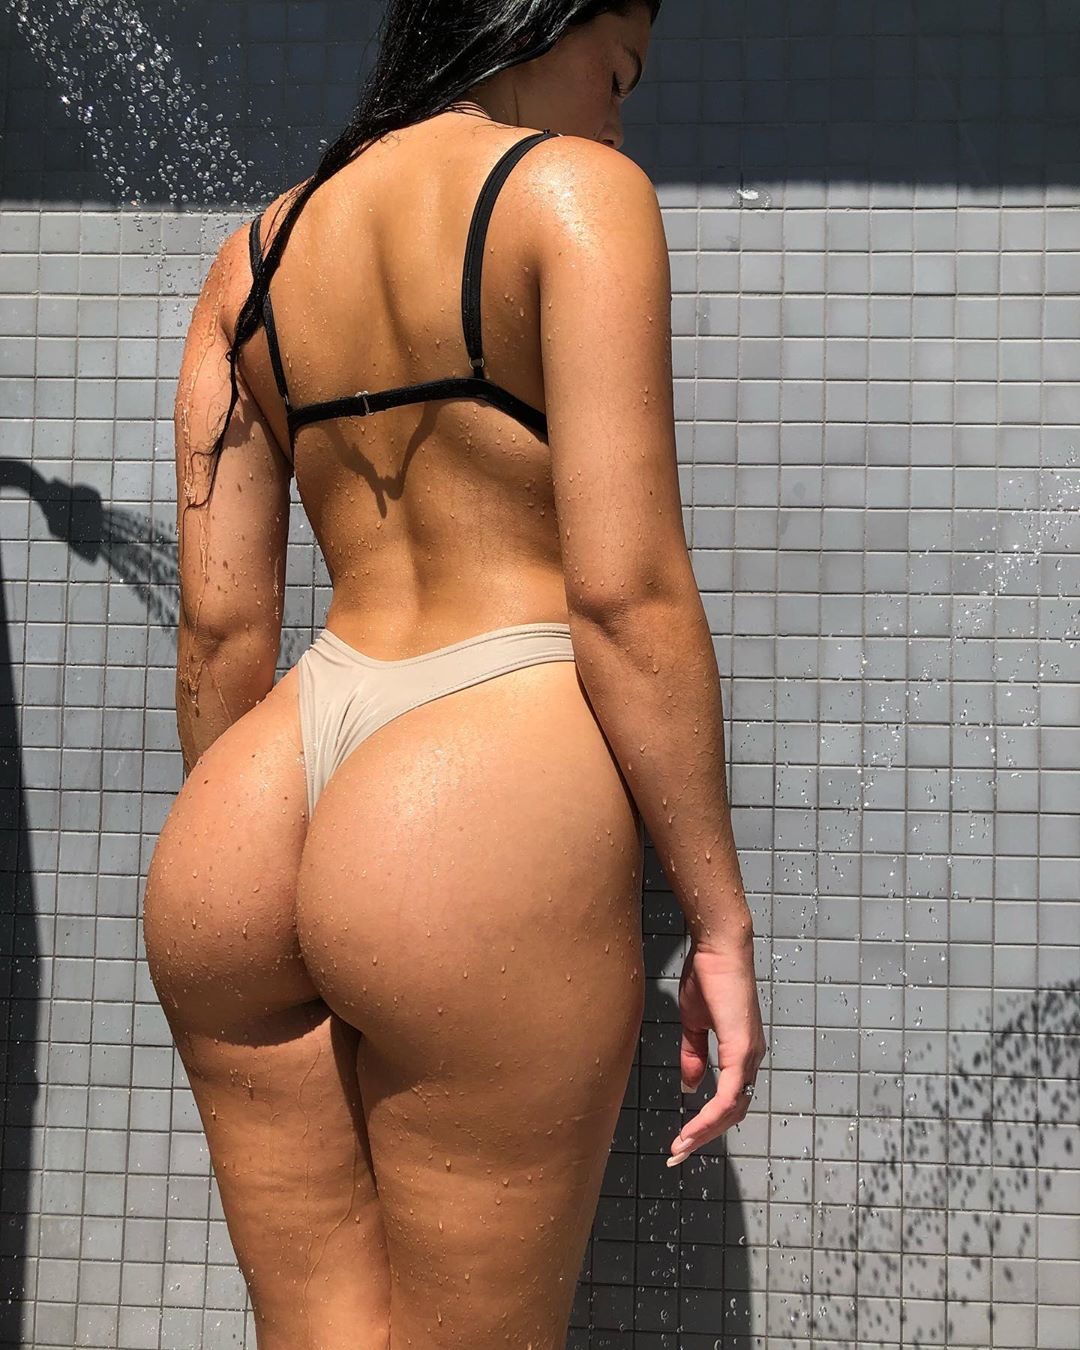 NEW PORN: Madison Ginley Nude Youtuber Leaked!